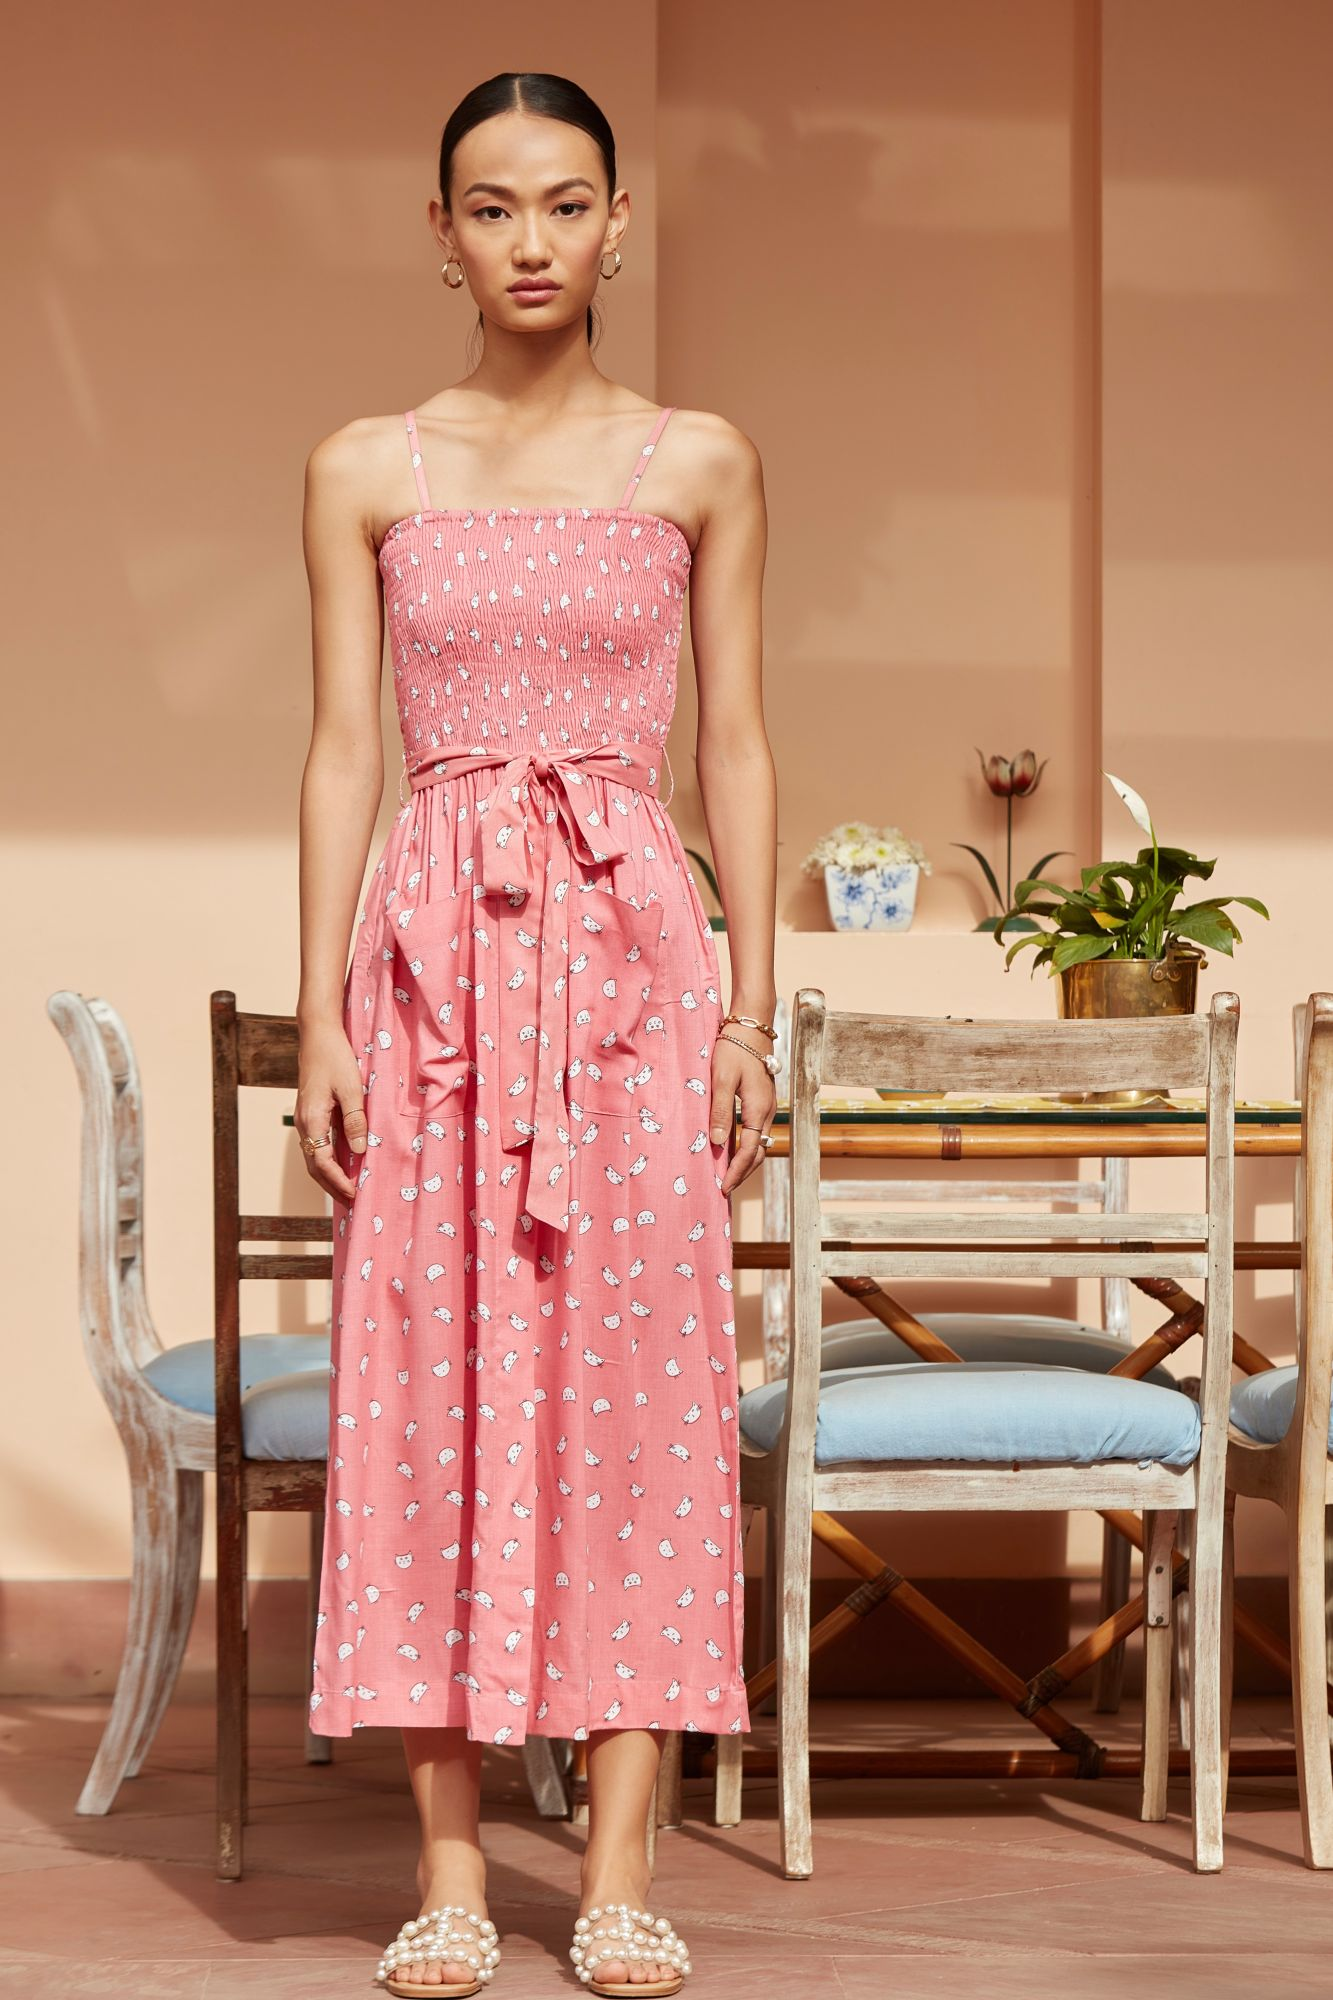 MEO PINK COLOUR ALL OVER PRINT SLEEVLESS RAYON MIDI LENGTH DRESS WITH POCKETS AND BELT